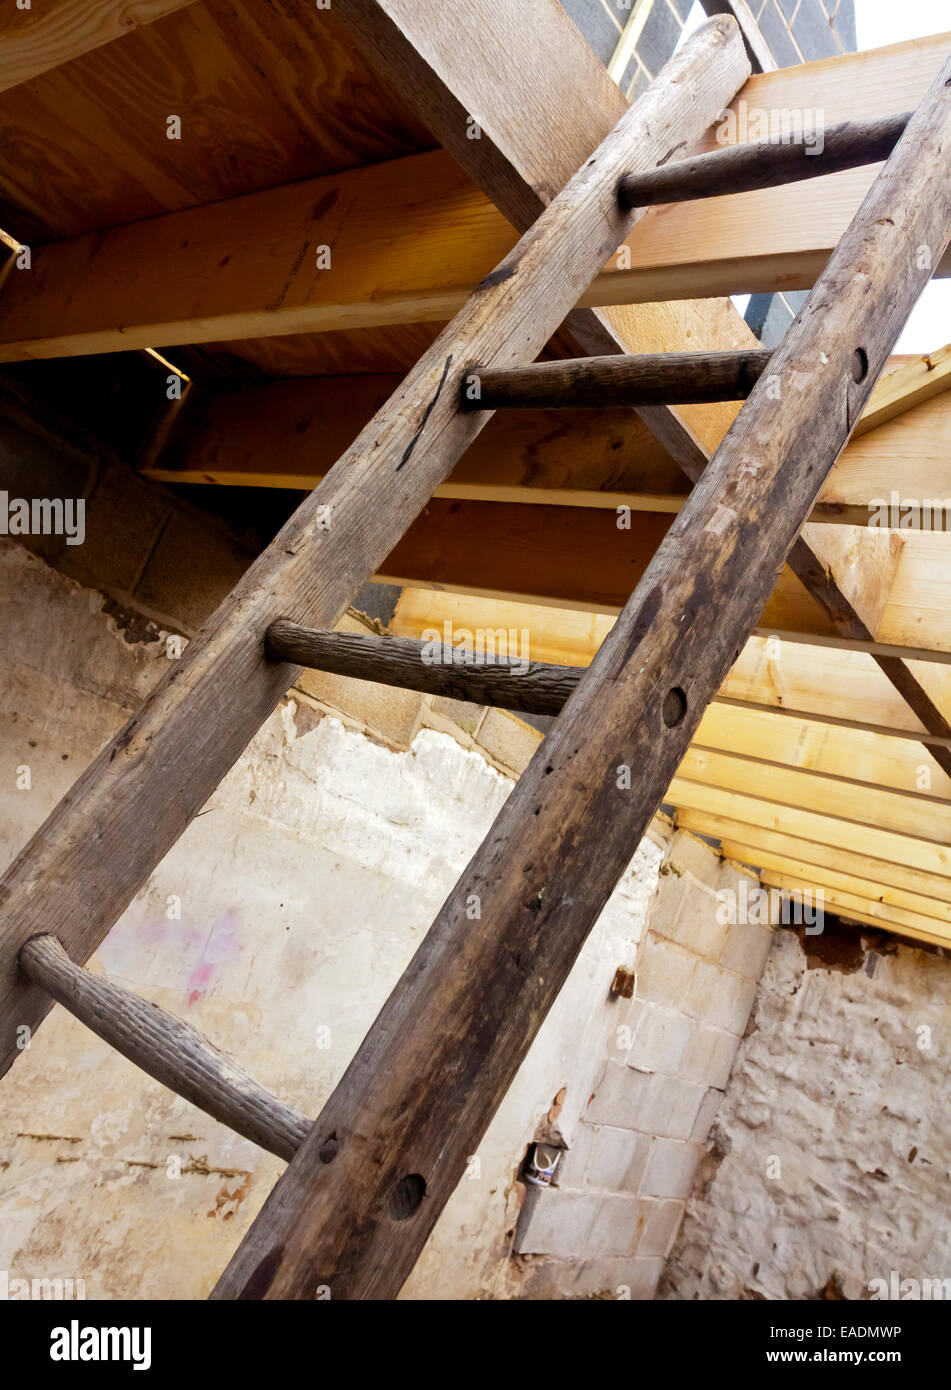 Detail of wooden ladder leading to wooden roof beams on a building site - Stock Image